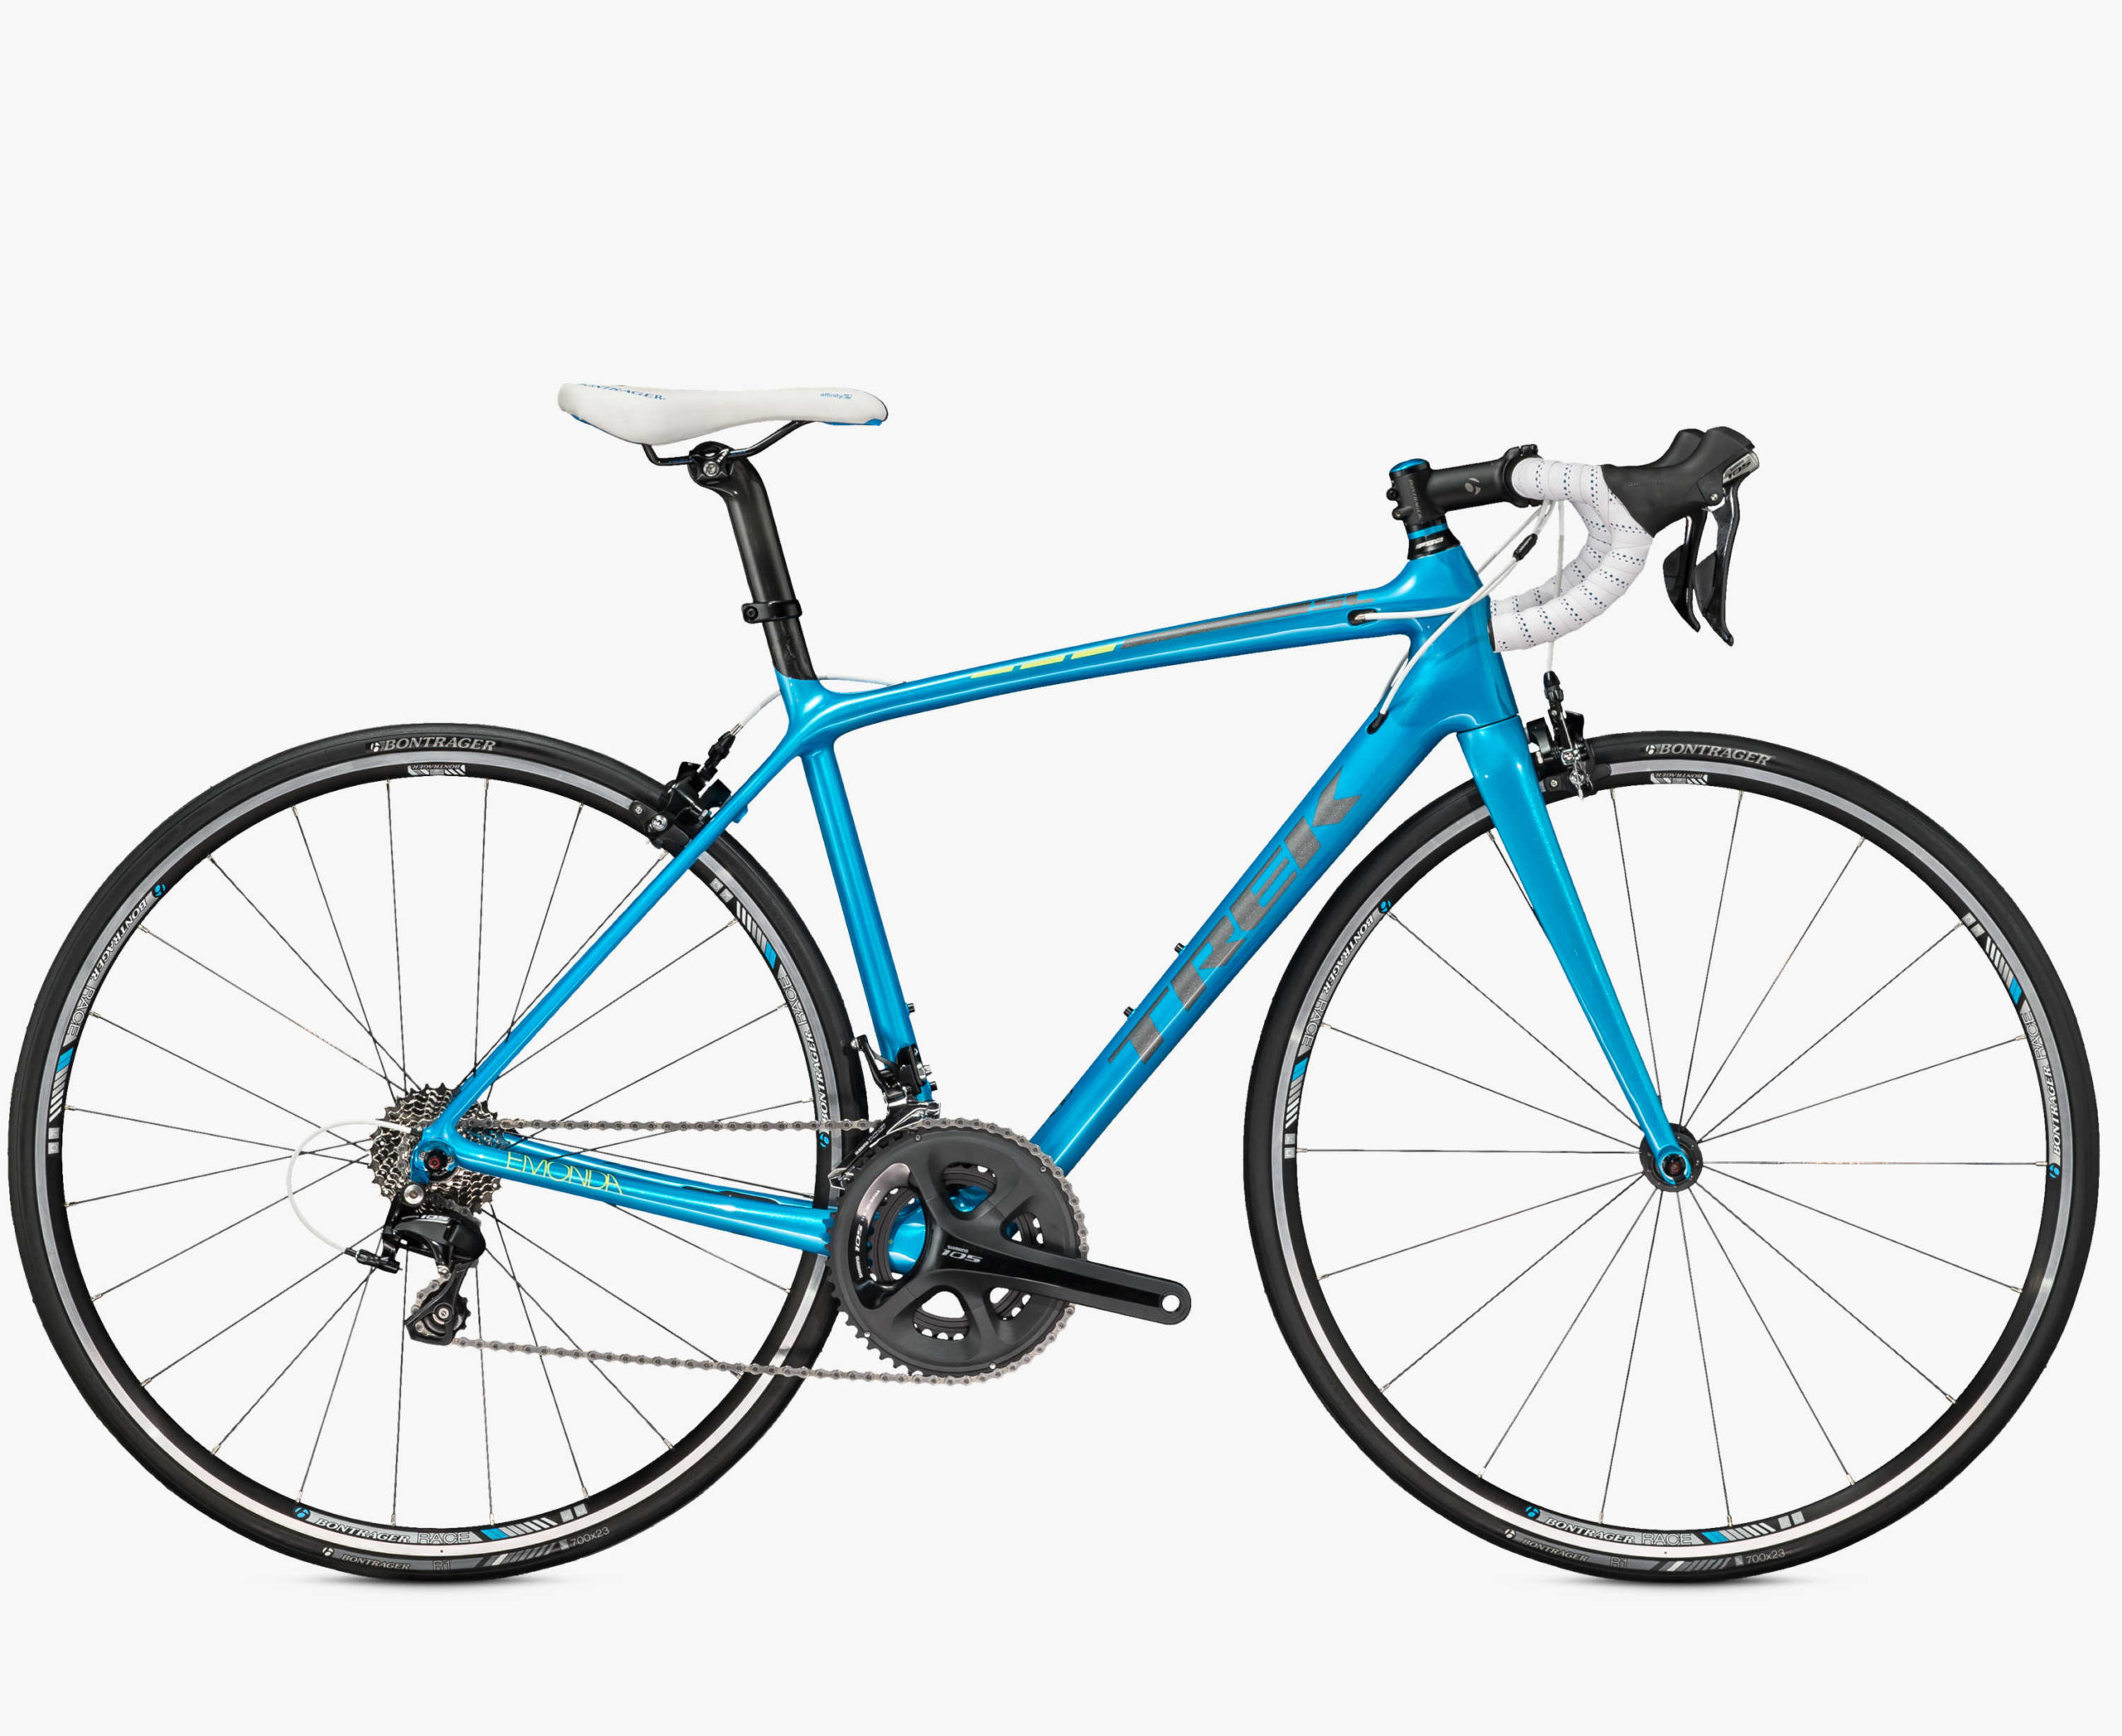 Trek Émonda SL 5 For the Émonda line Trek set out to create the lightest line of production road bikes ever offered. This super light and stiff high performance bike will take your riding to the next level and you won't have to take out another mortgage! Plus, how pretty is the Appleseed Blue?!